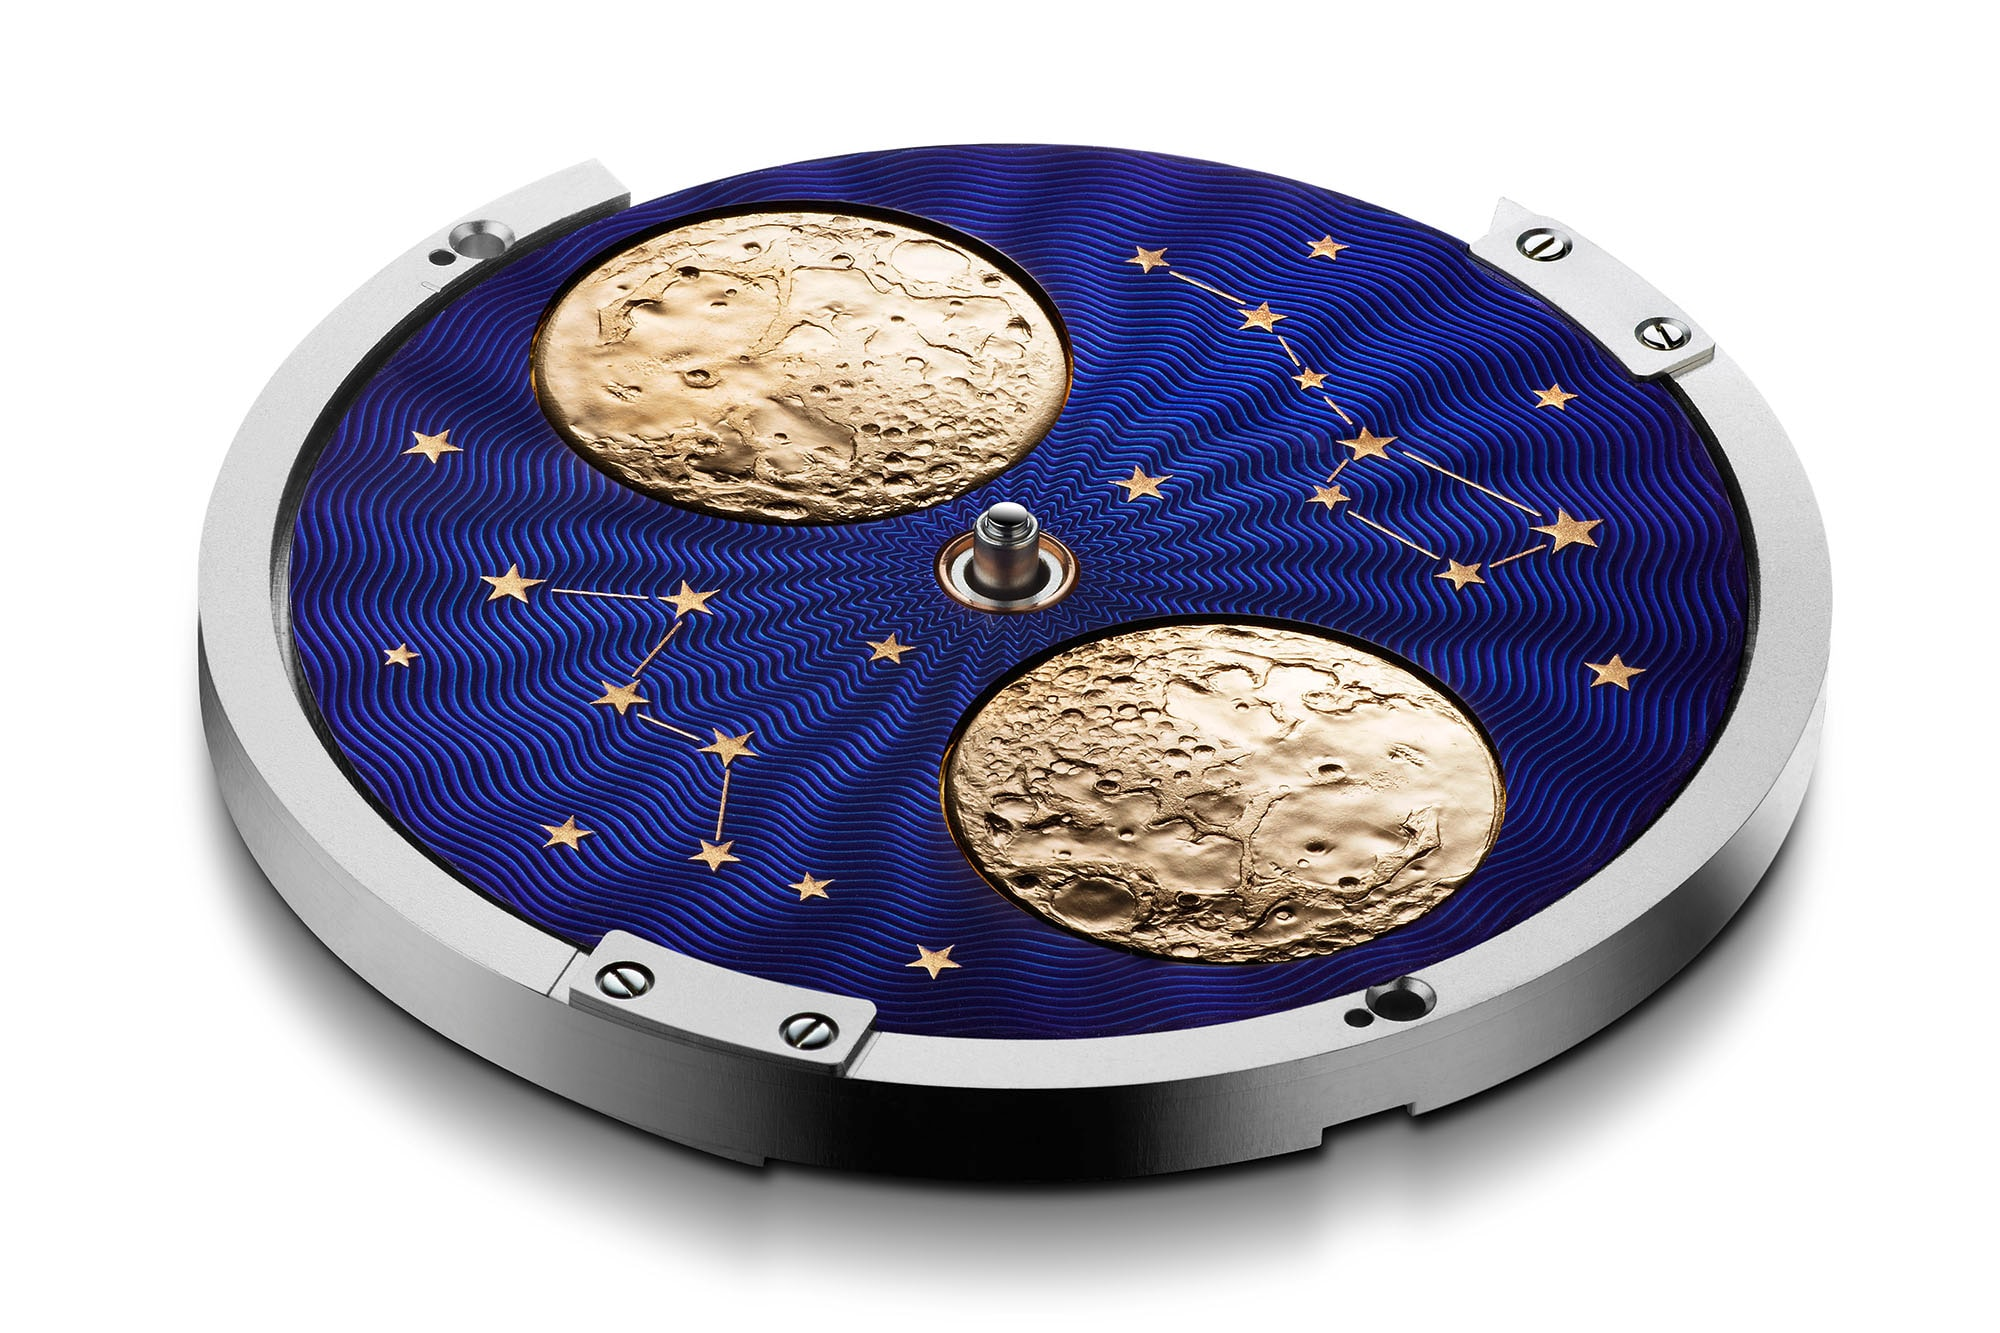 The Arnold & Son HM Double Hemisphere Perpetual Moon moonphase disk Introducing: The Arnold & Son HM Double Hemisphere Perpetual Moon, With A Very Large High Precision Moon Phase Display Introducing: The Arnold & Son HM Double Hemisphere Perpetual Moon, With A Very Large High Precision Moon Phase Display 1b